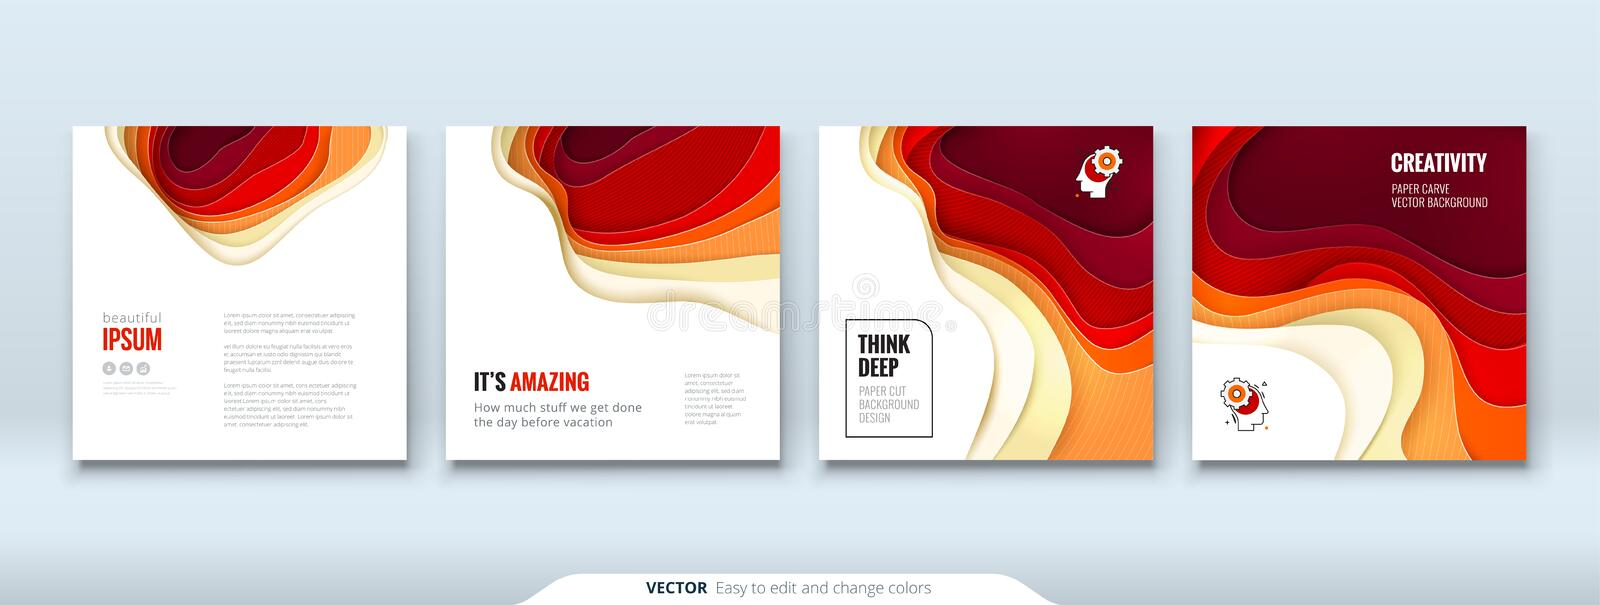 Paper cut background concept Paper carve abstract background for card banner brochure flyer design in red orange yellow stock illustration